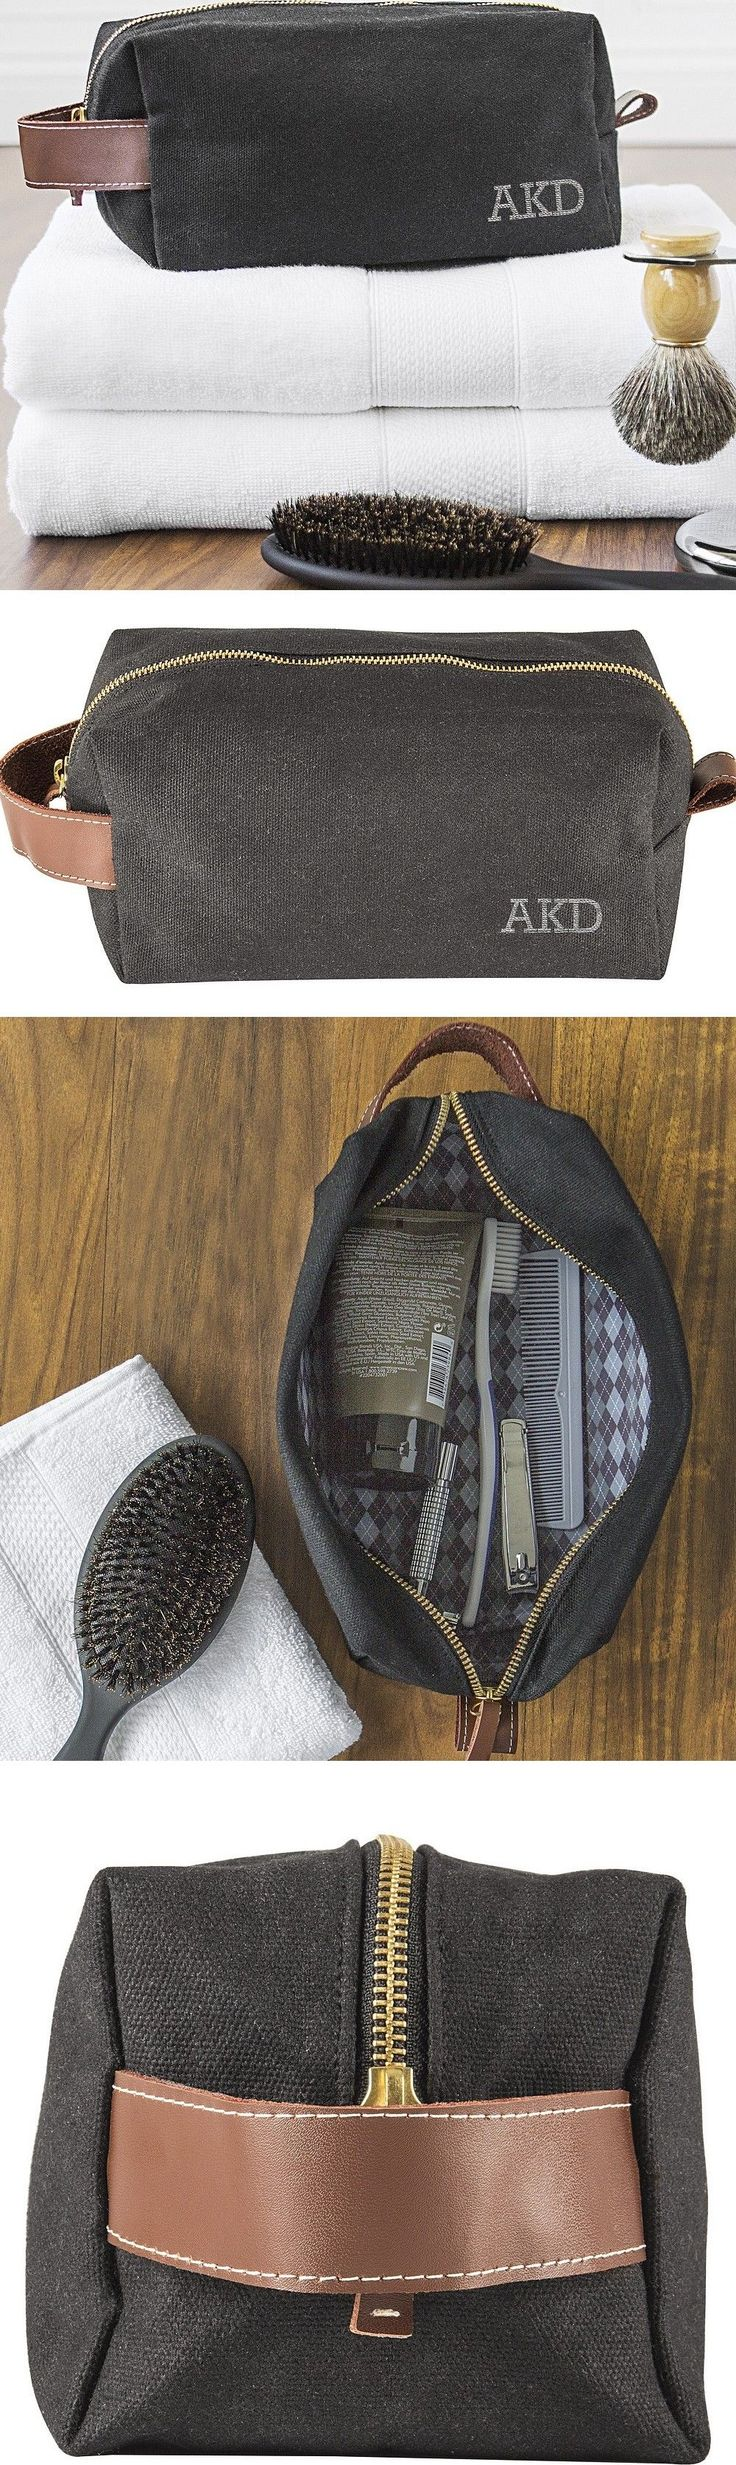 Groomsmen Gift Idea - Give your best man and each of your groomsmen a canvas dopp kit travel bag personalized with their initials. The guys can keep their toiletry and grooming needs handy fro traveling.